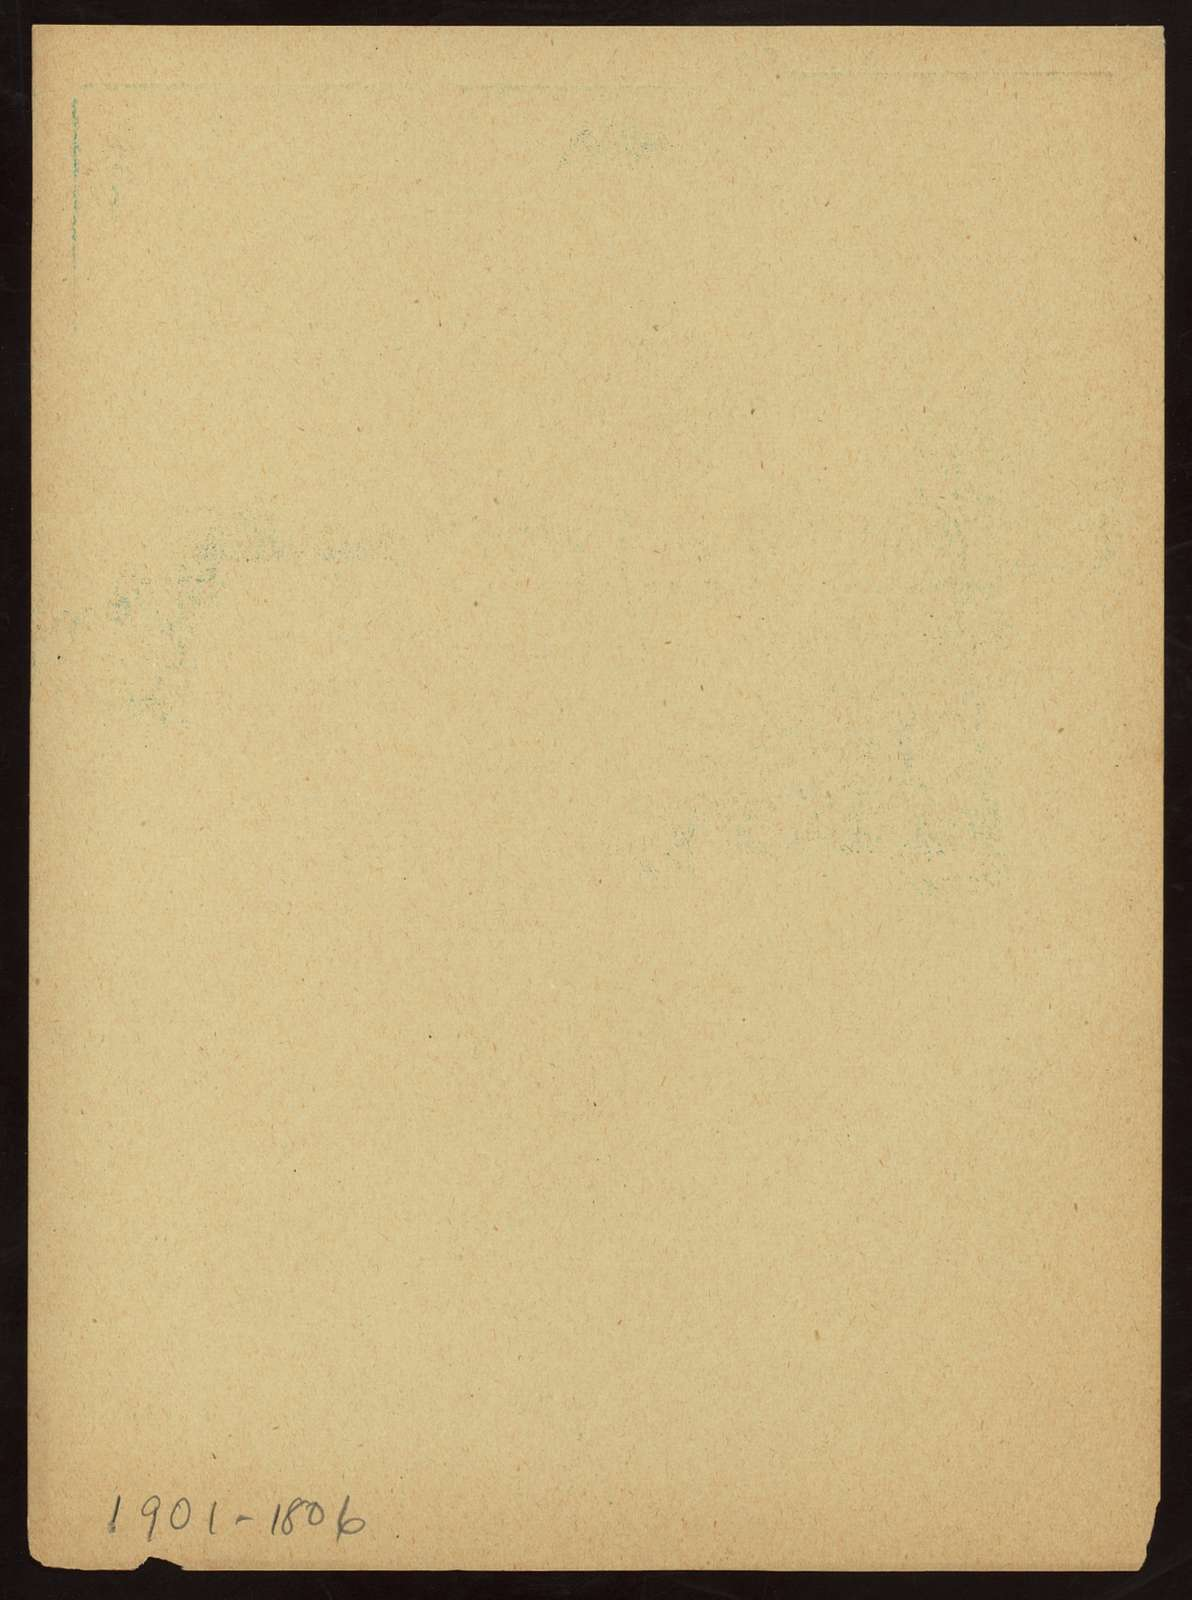 """DINNER [held by] STATLER'S HOTEL AND RESTAURANT [at] """"ELLICOTT SQUARE, BUFFALO, NY"""" (HOTEL/REST;)"""